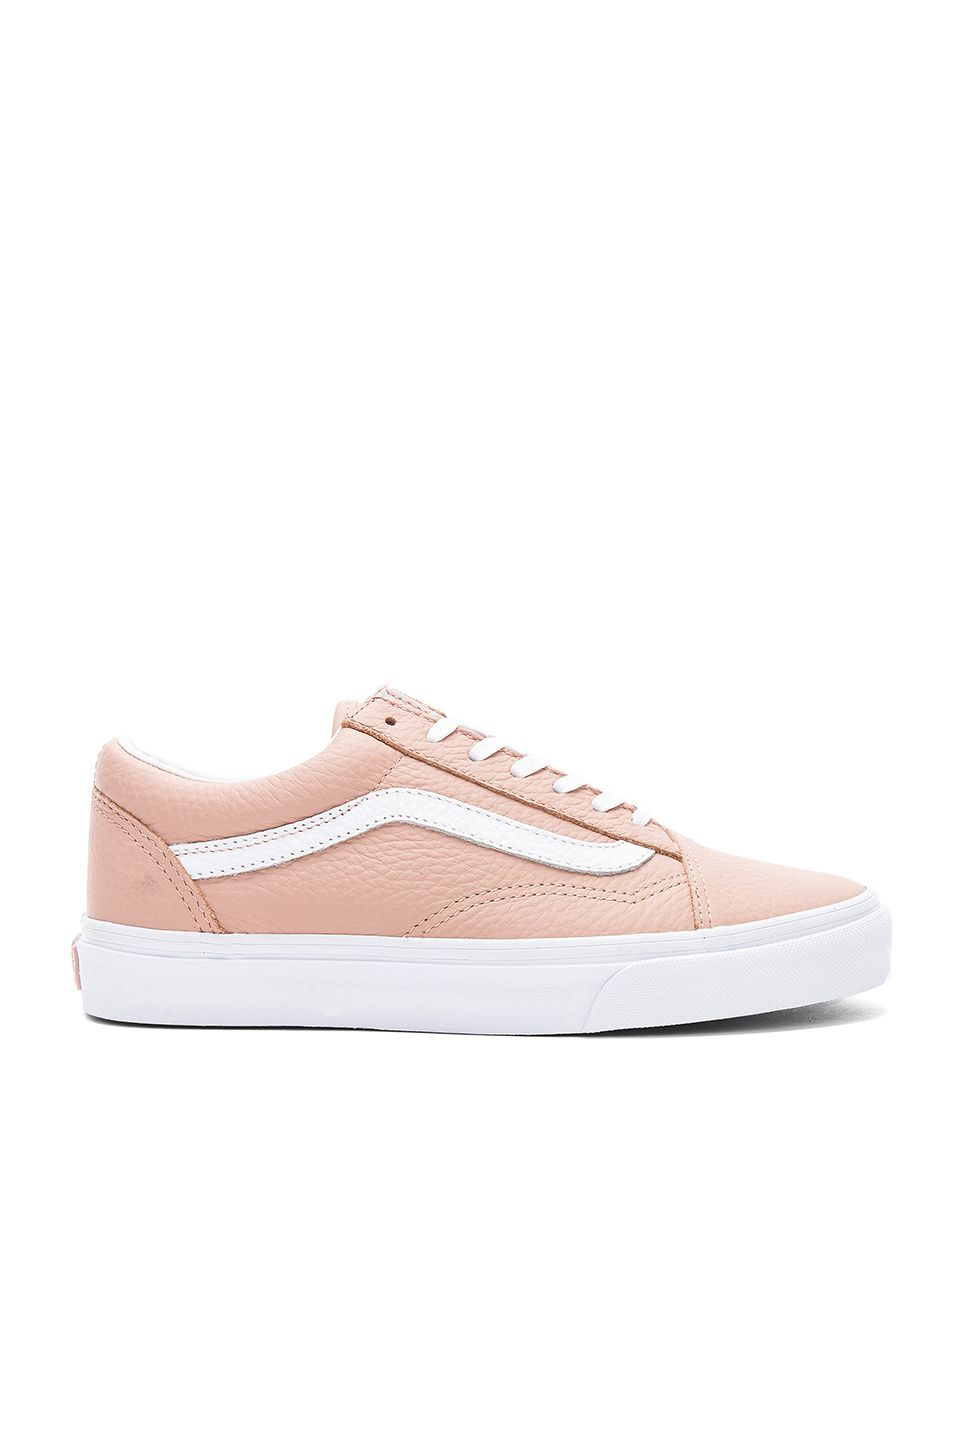 38f81027f02d7d Vans Tumble Leather Old Skool DX Sneaker in Mahogany Rose   True White